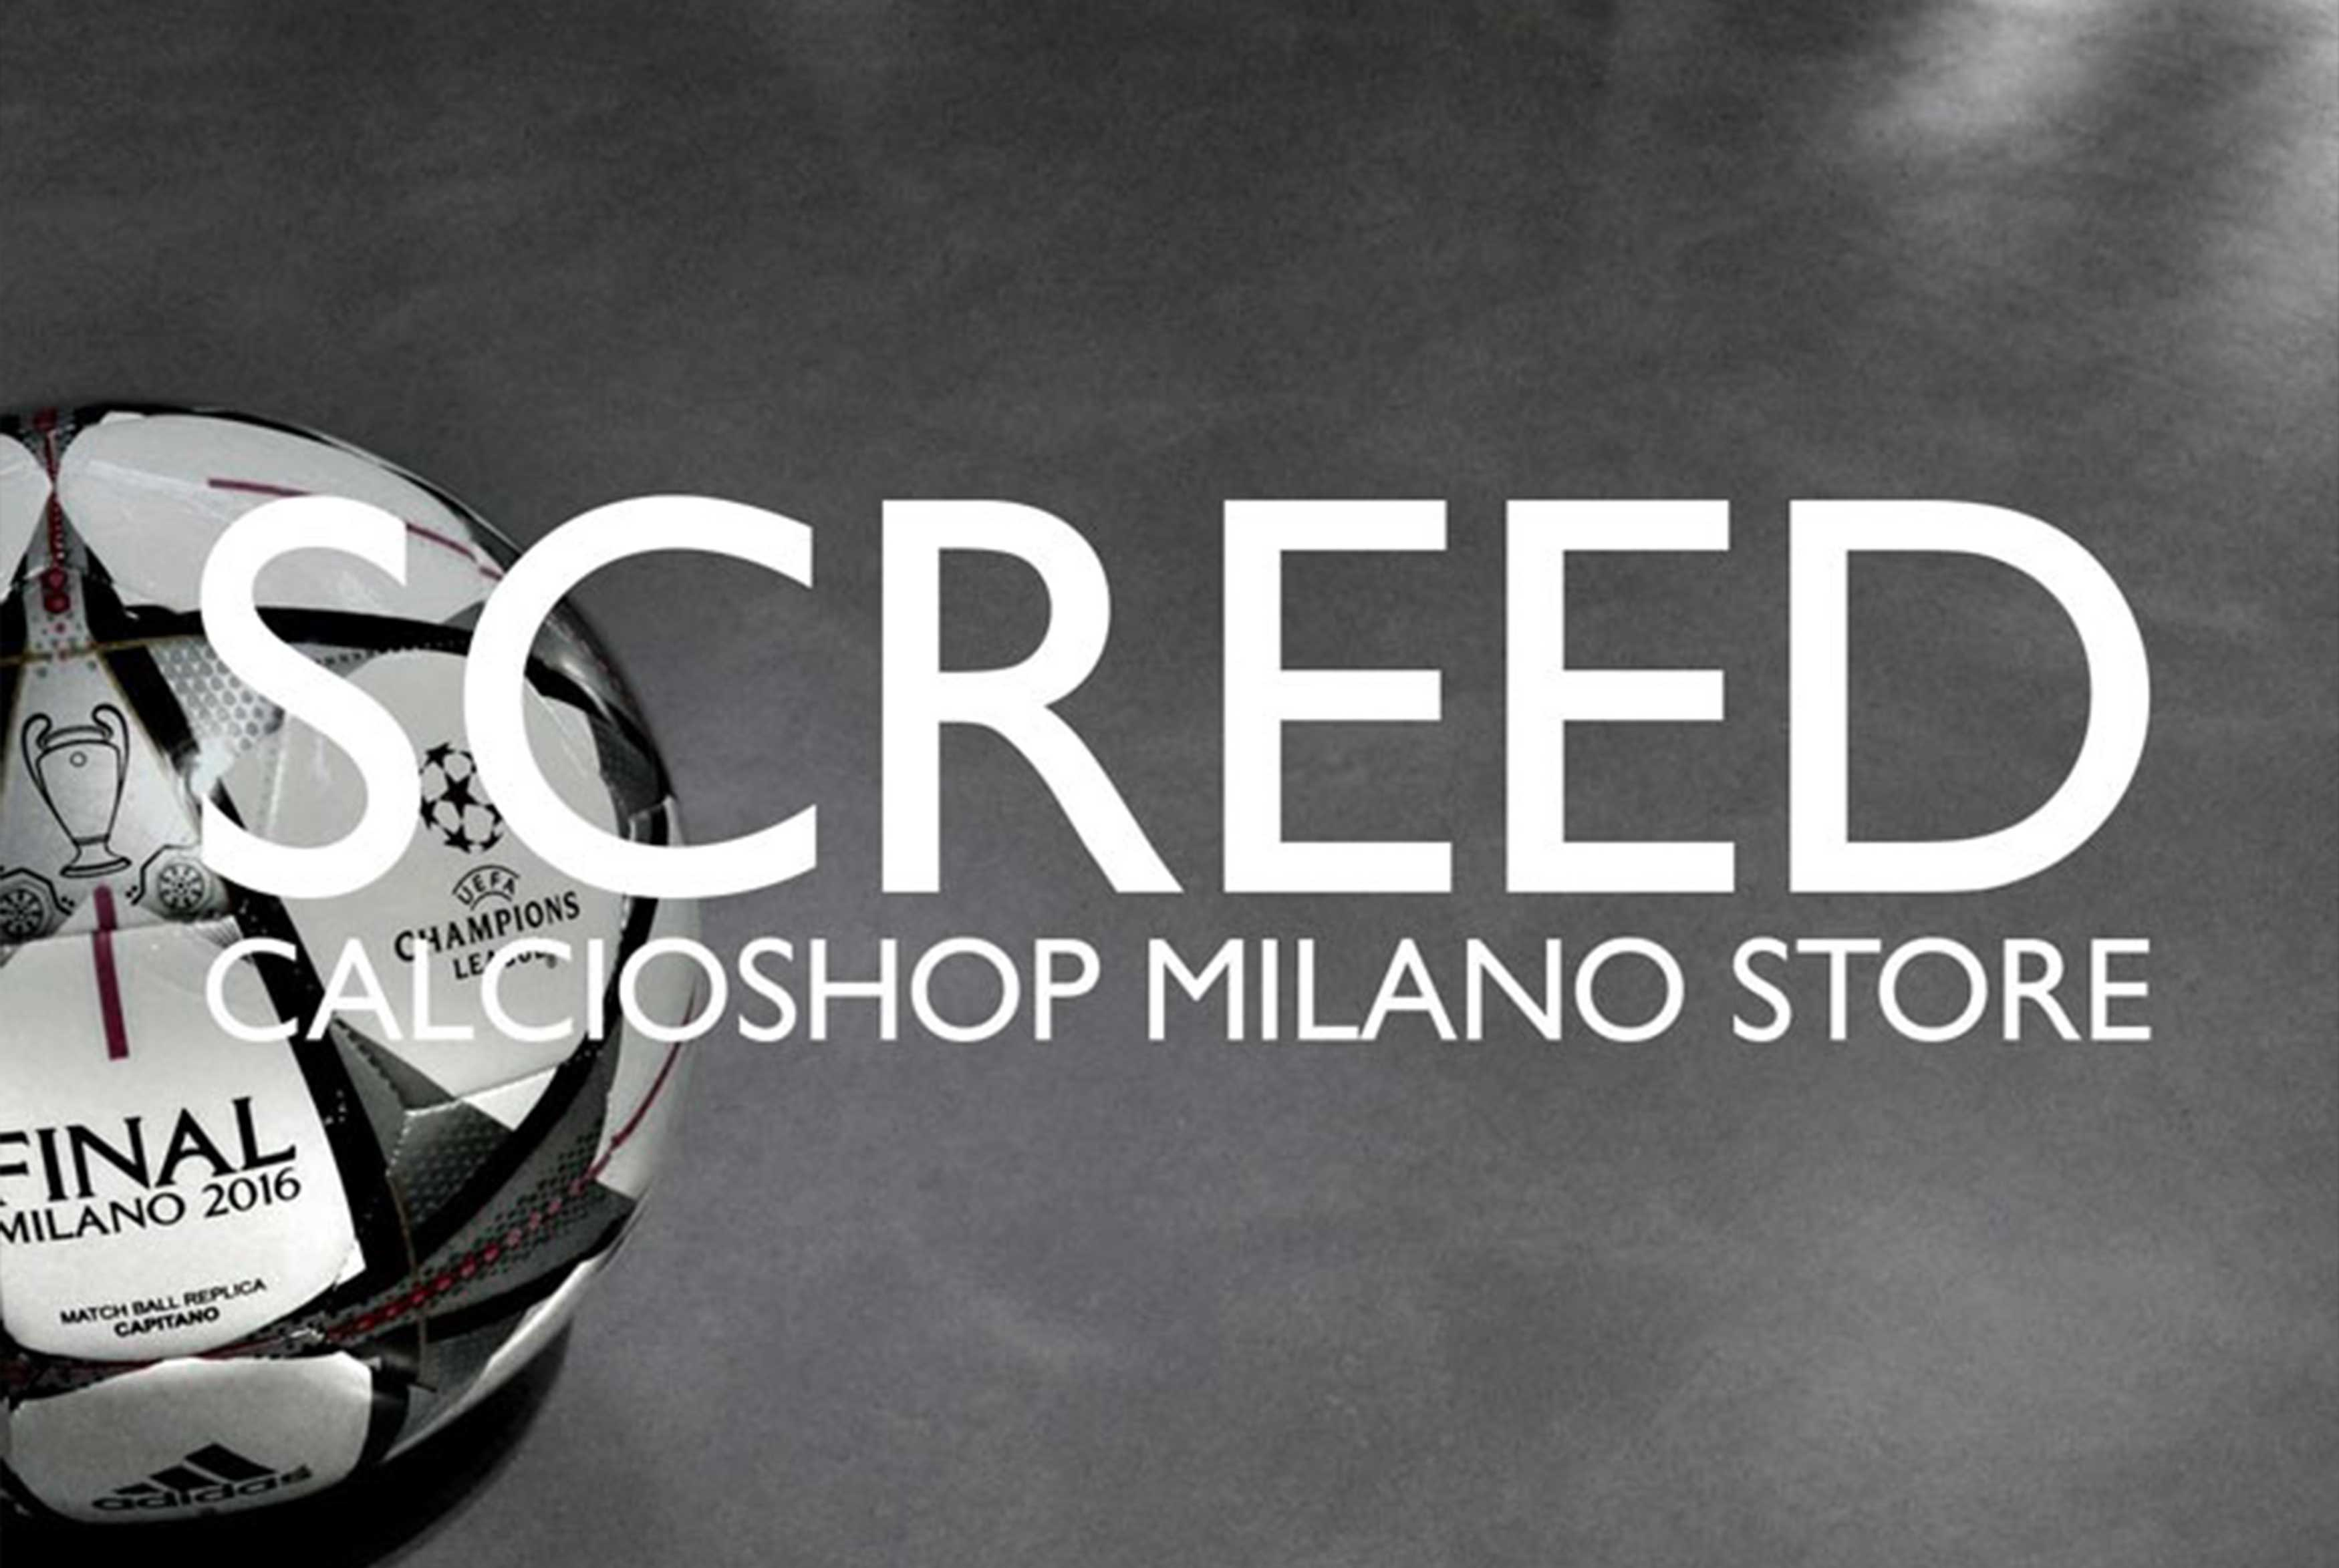 Calcioshop chose Screed by Chroma Global brand partner Artigo for concrete look